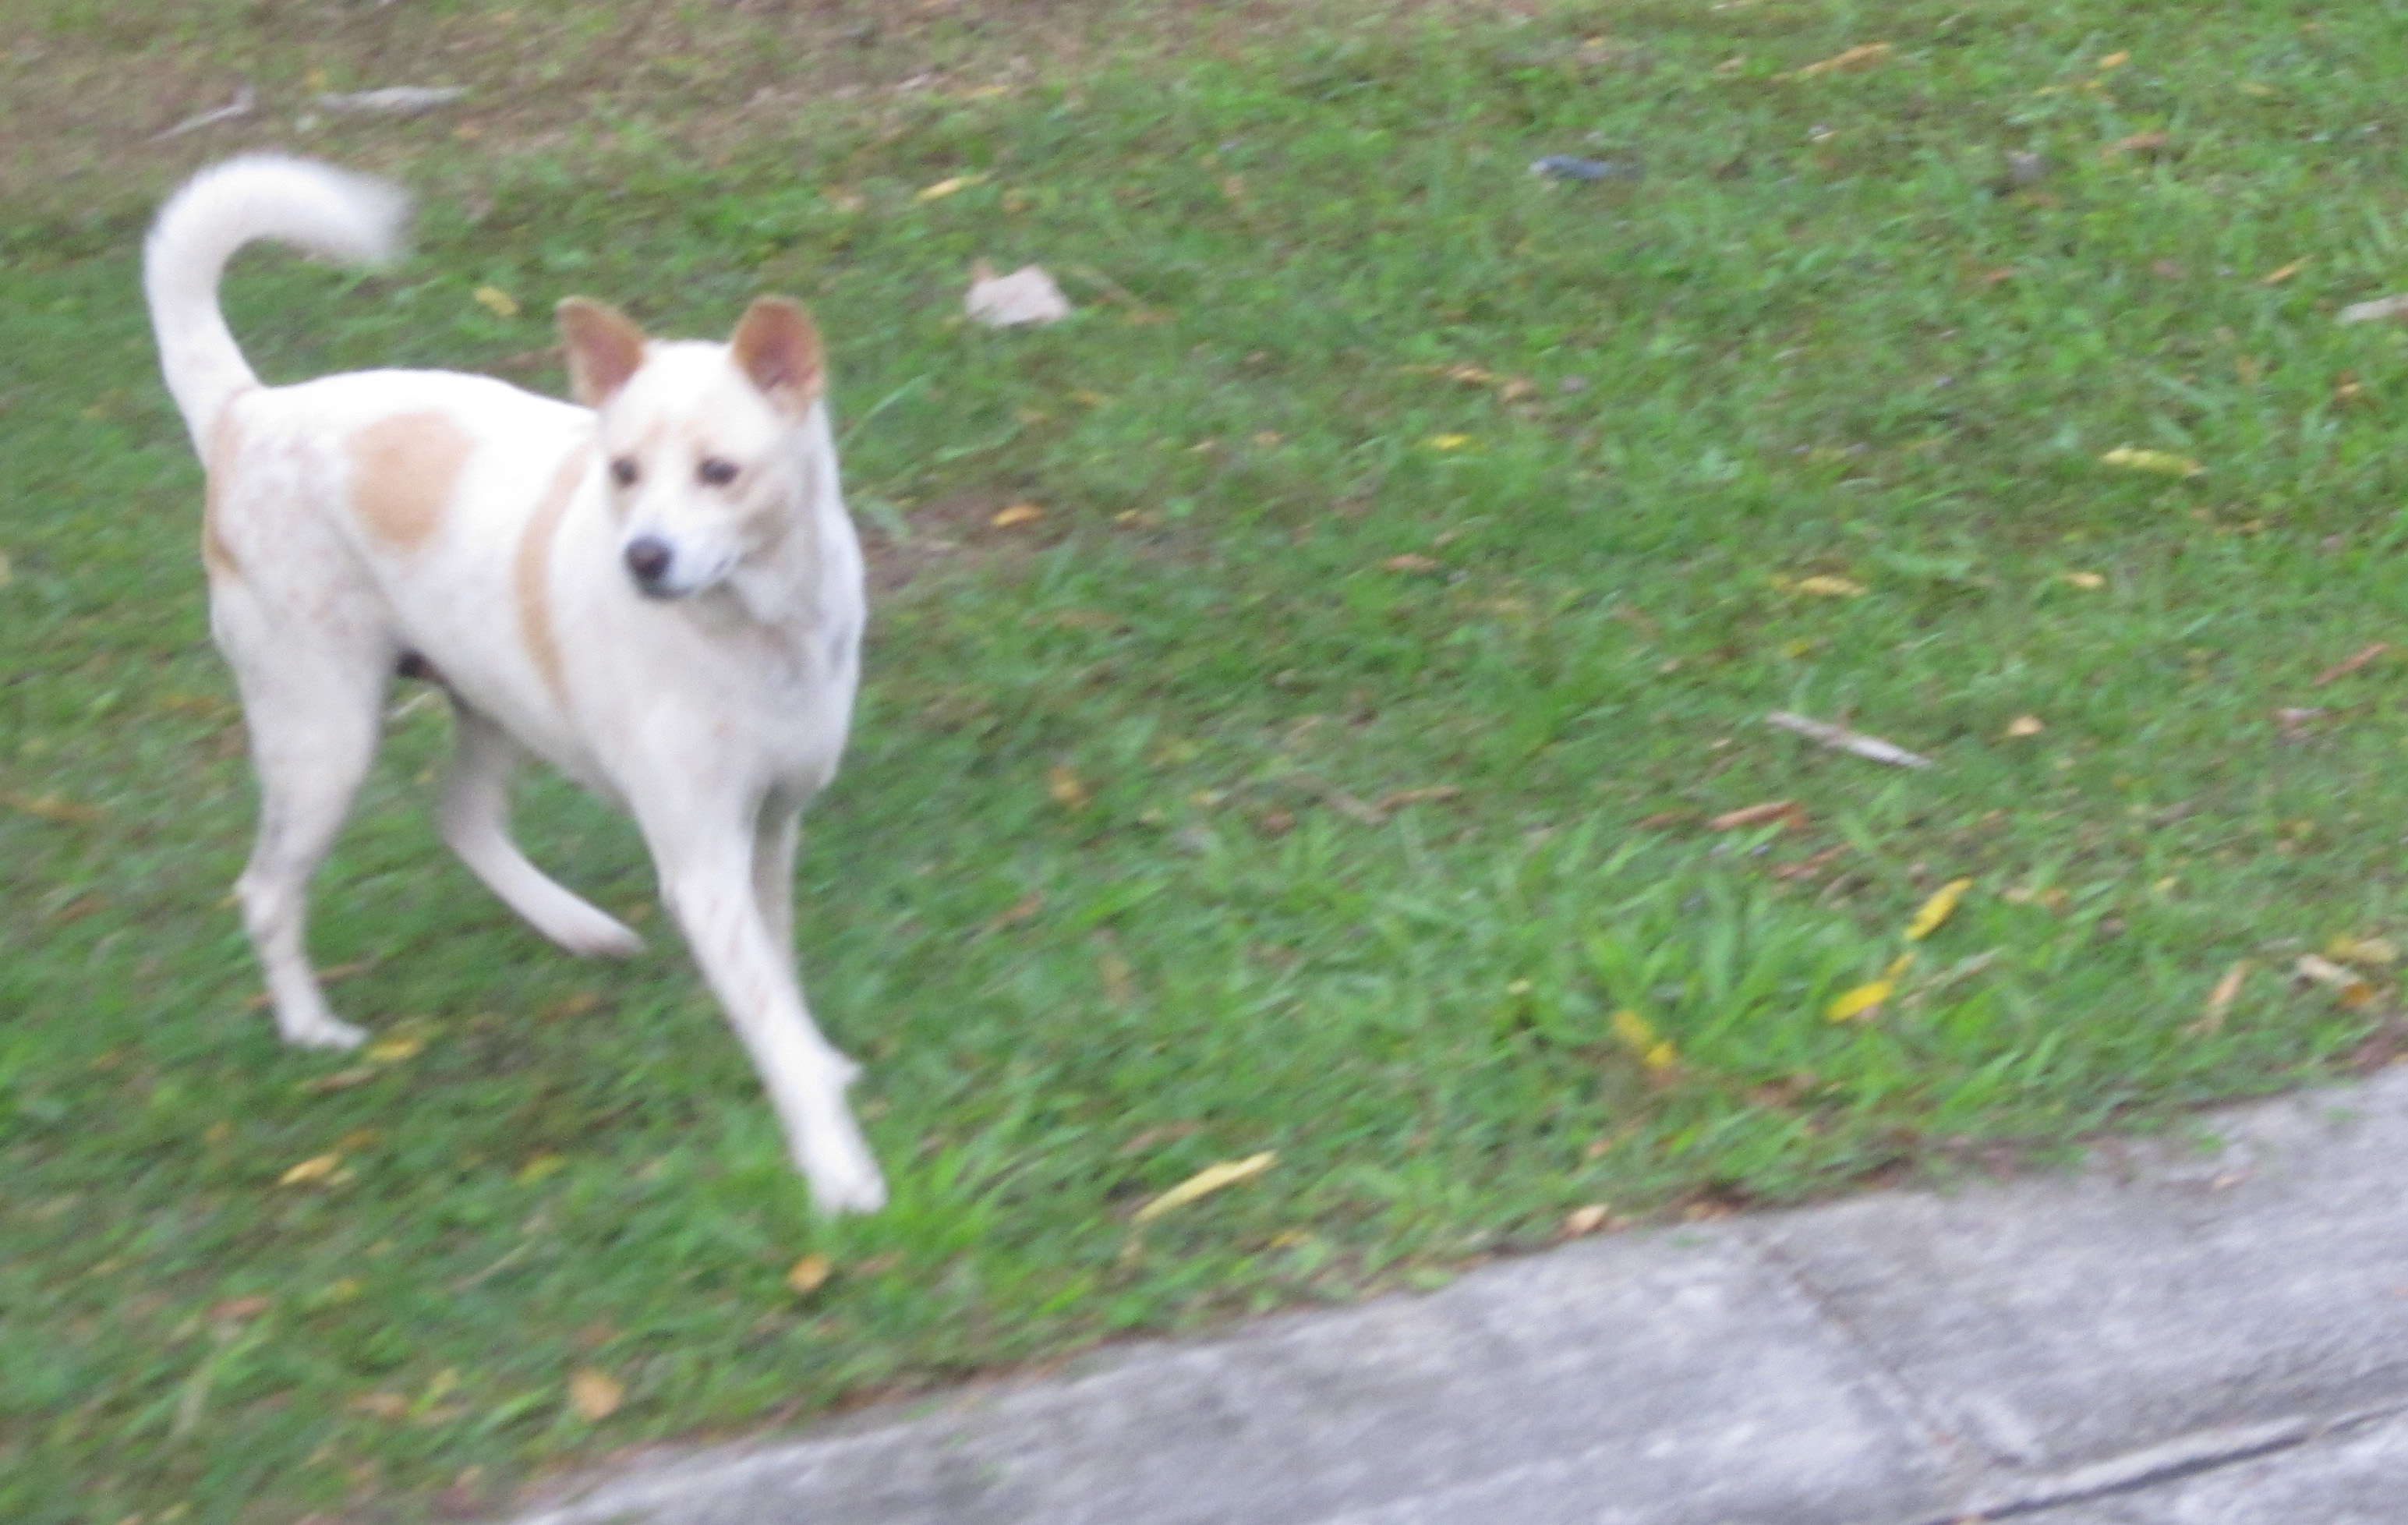 Blessy-the-dog-foto1